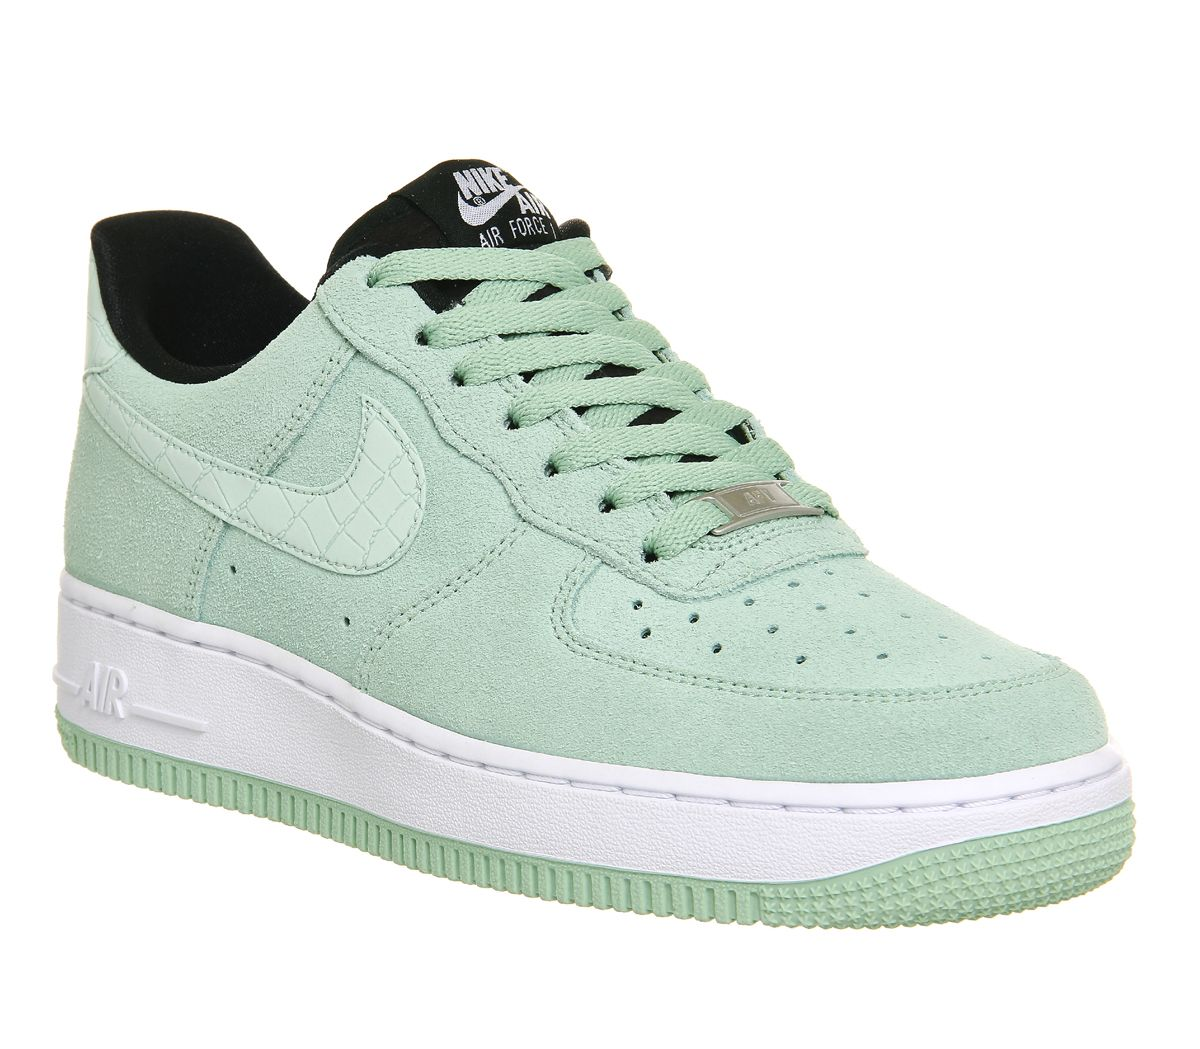 office nike air force. Buy Enamel Green Nike Air Force 1 \u002707 Prm Wmns From OFFICE.co. Office